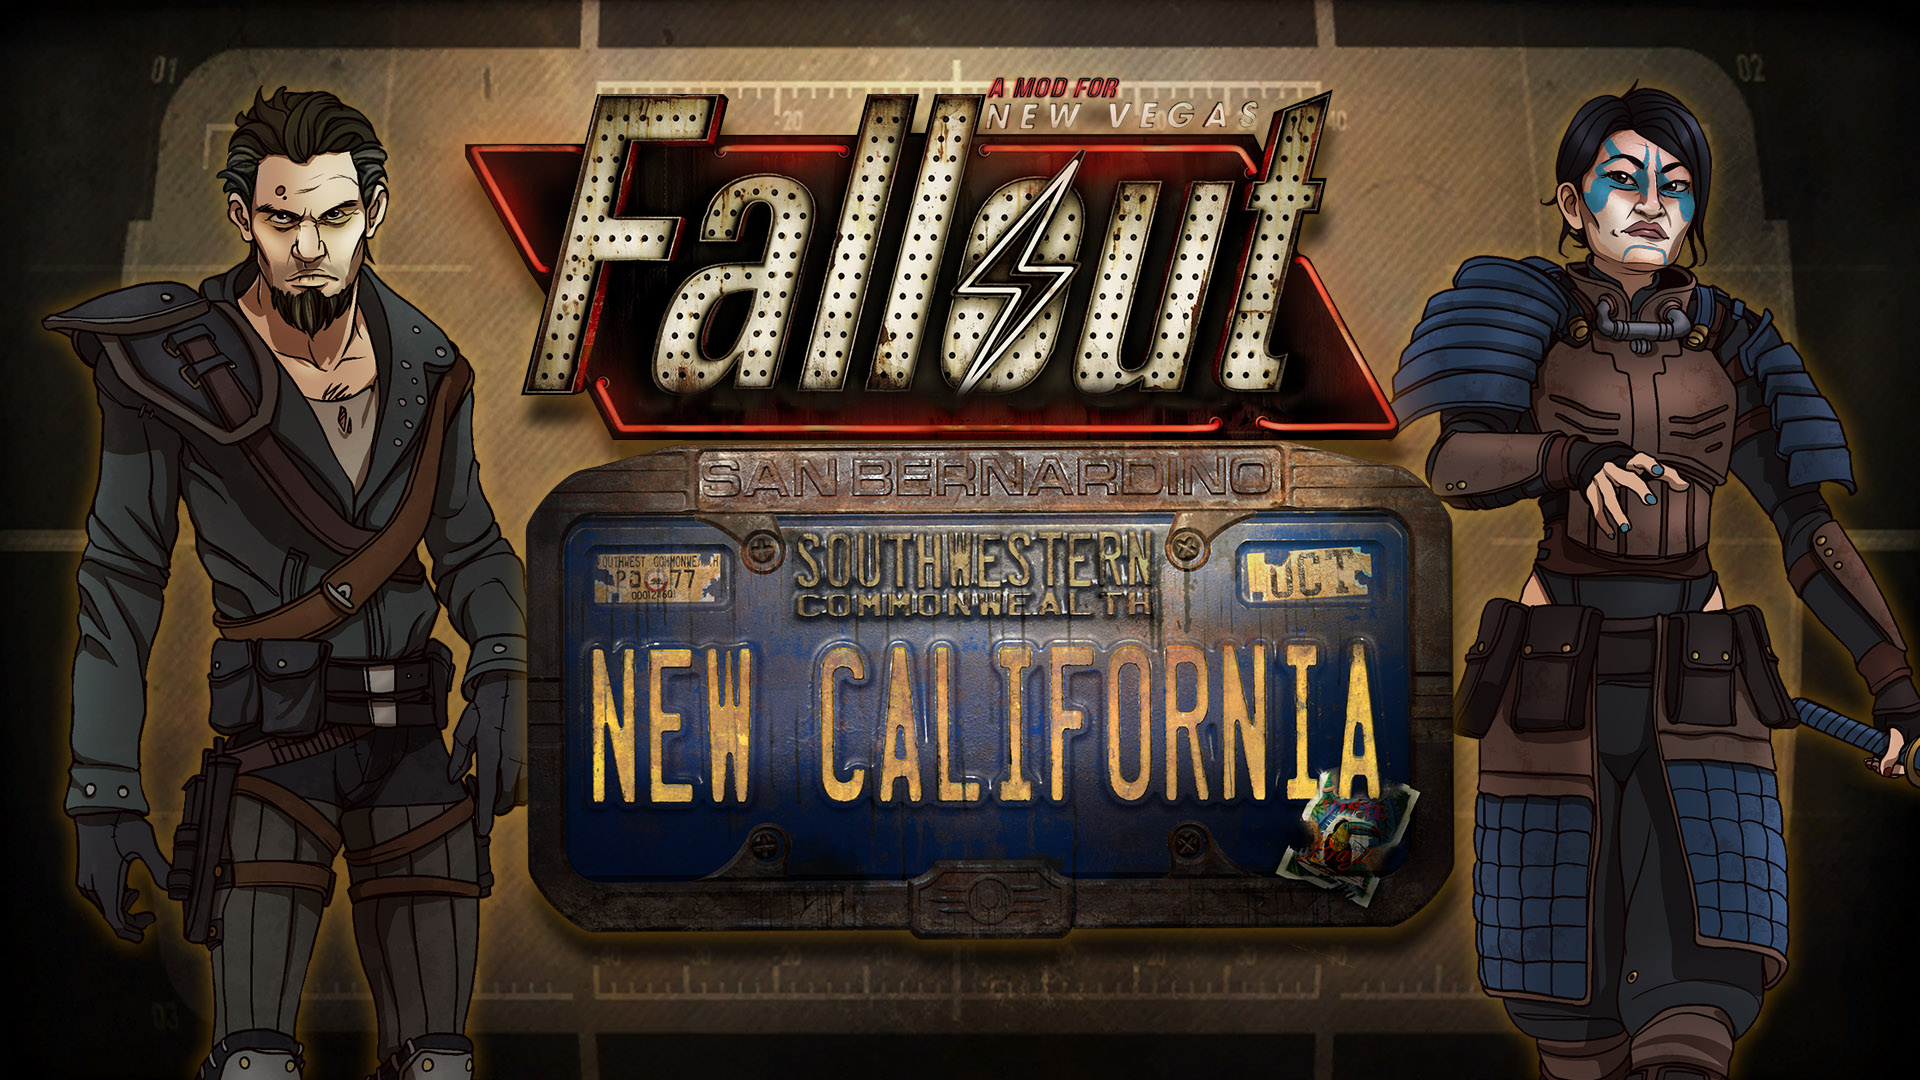 Since fallout 76 is trash, what are some good mods for new